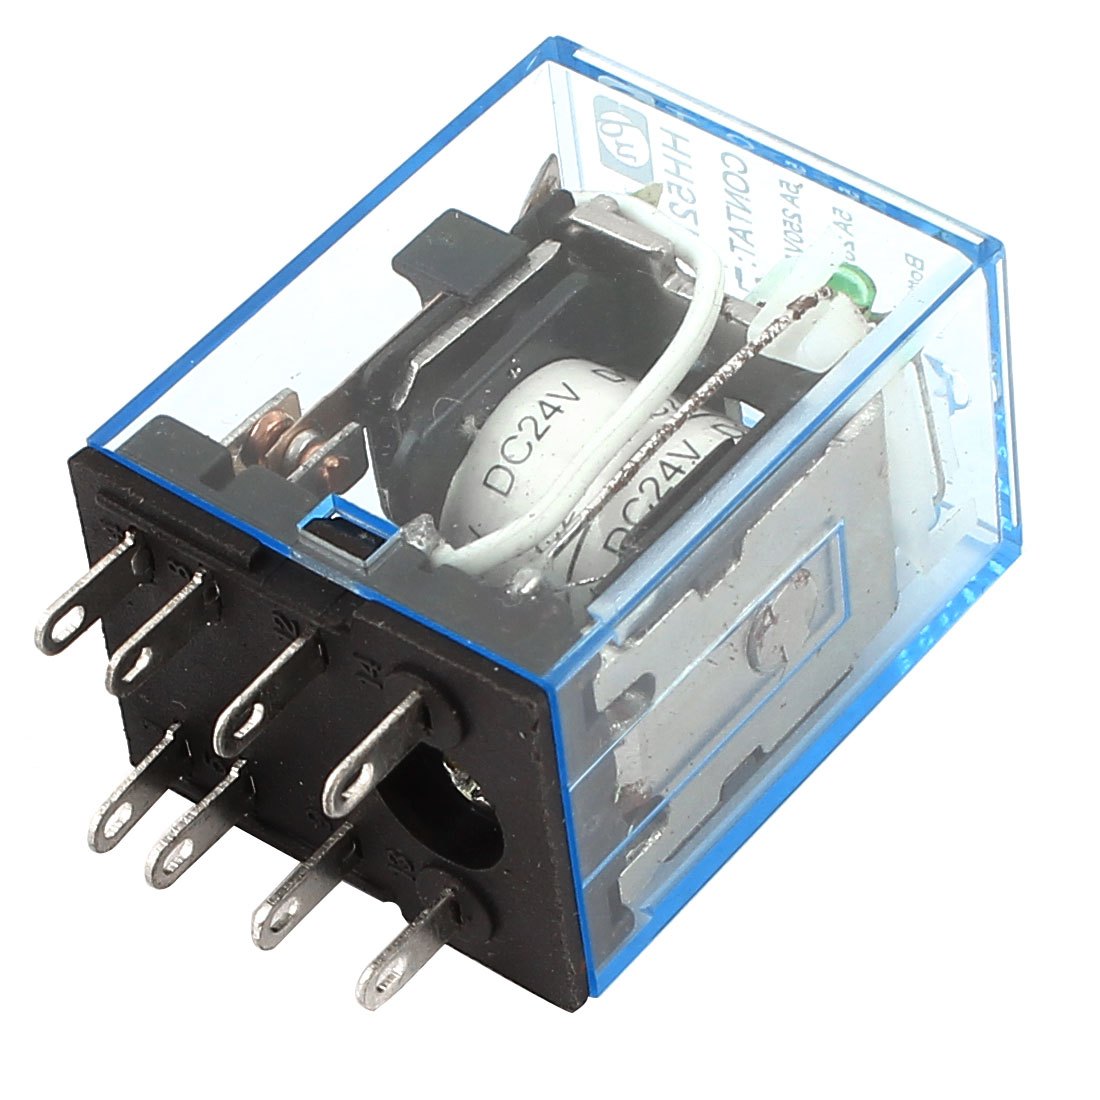 HH52P DC 24V 5A Coil 8 Pin DPDT Green LED Indicator Light Power Relay